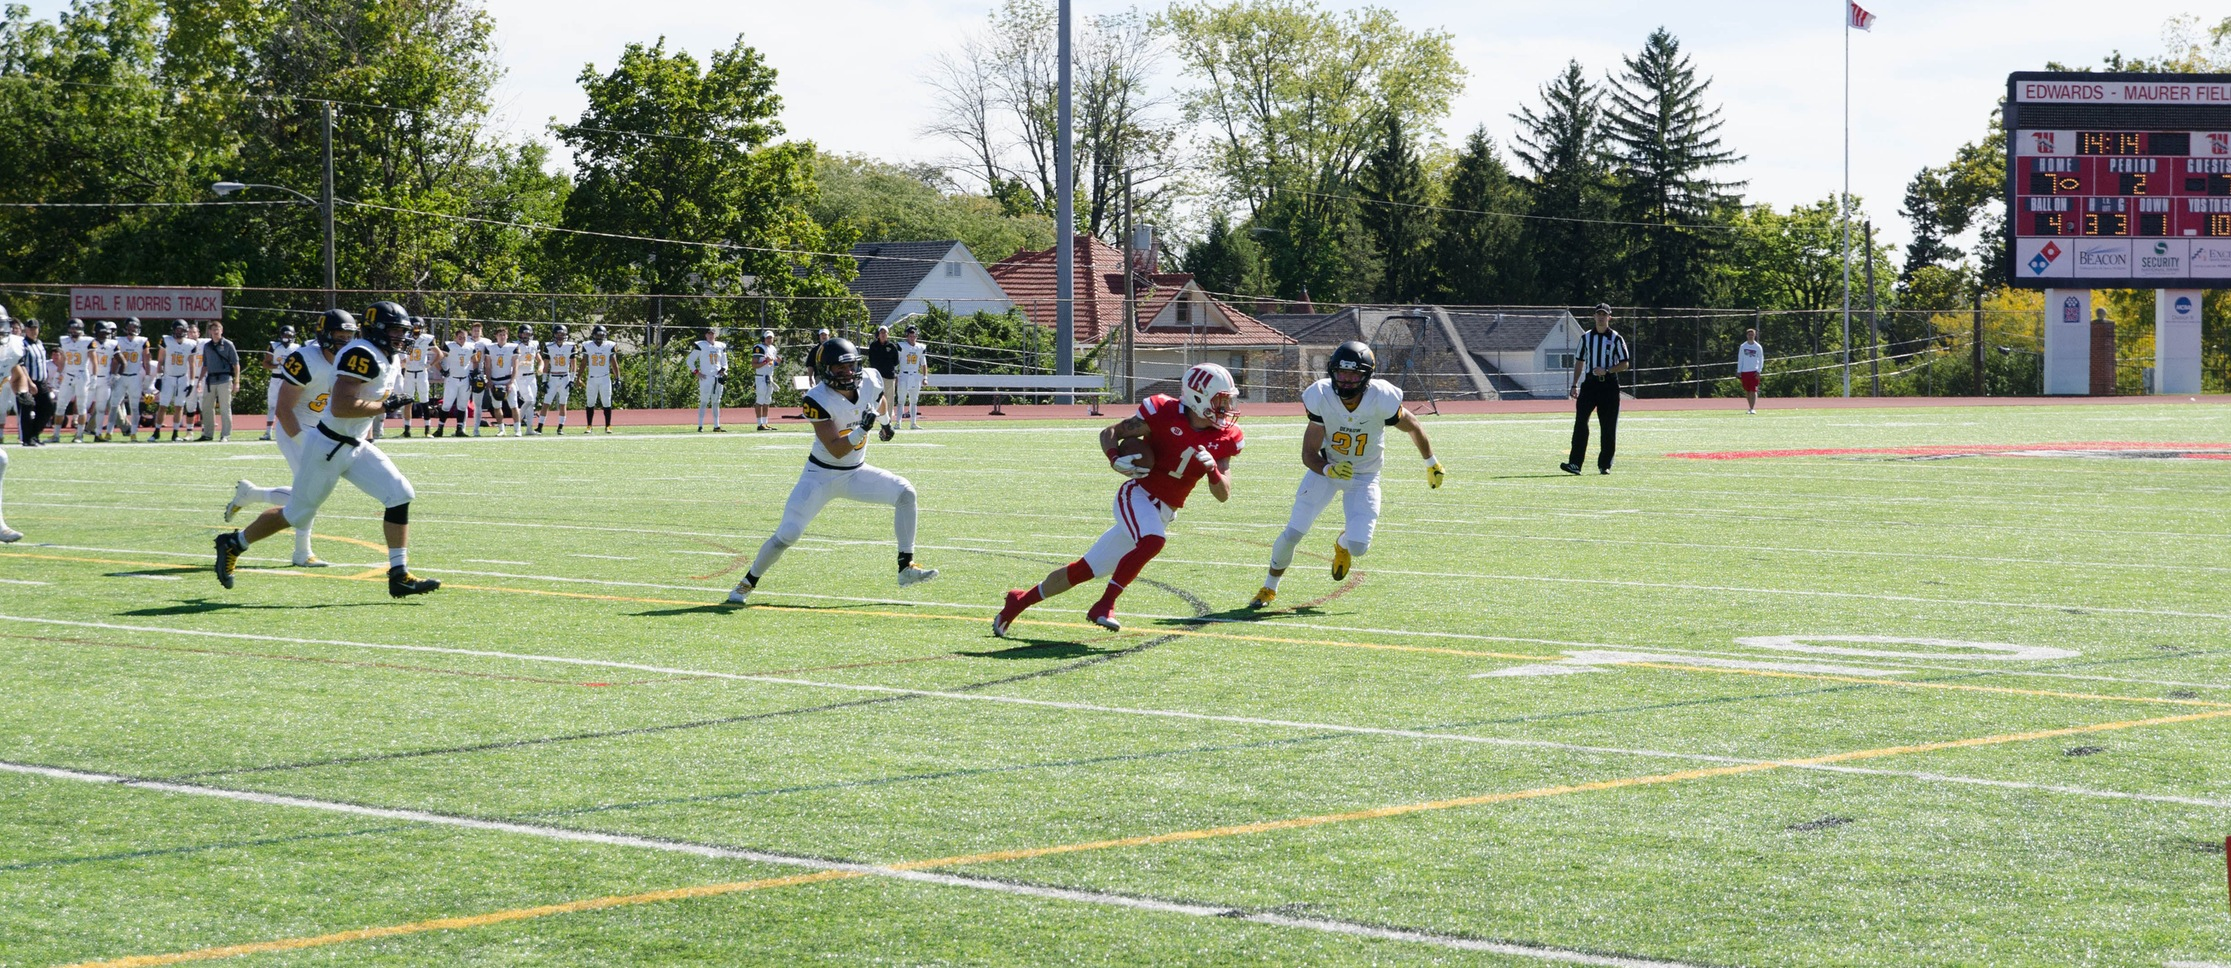 #16 Wittenberg Opens Season with 20-14 Win Over Westminster